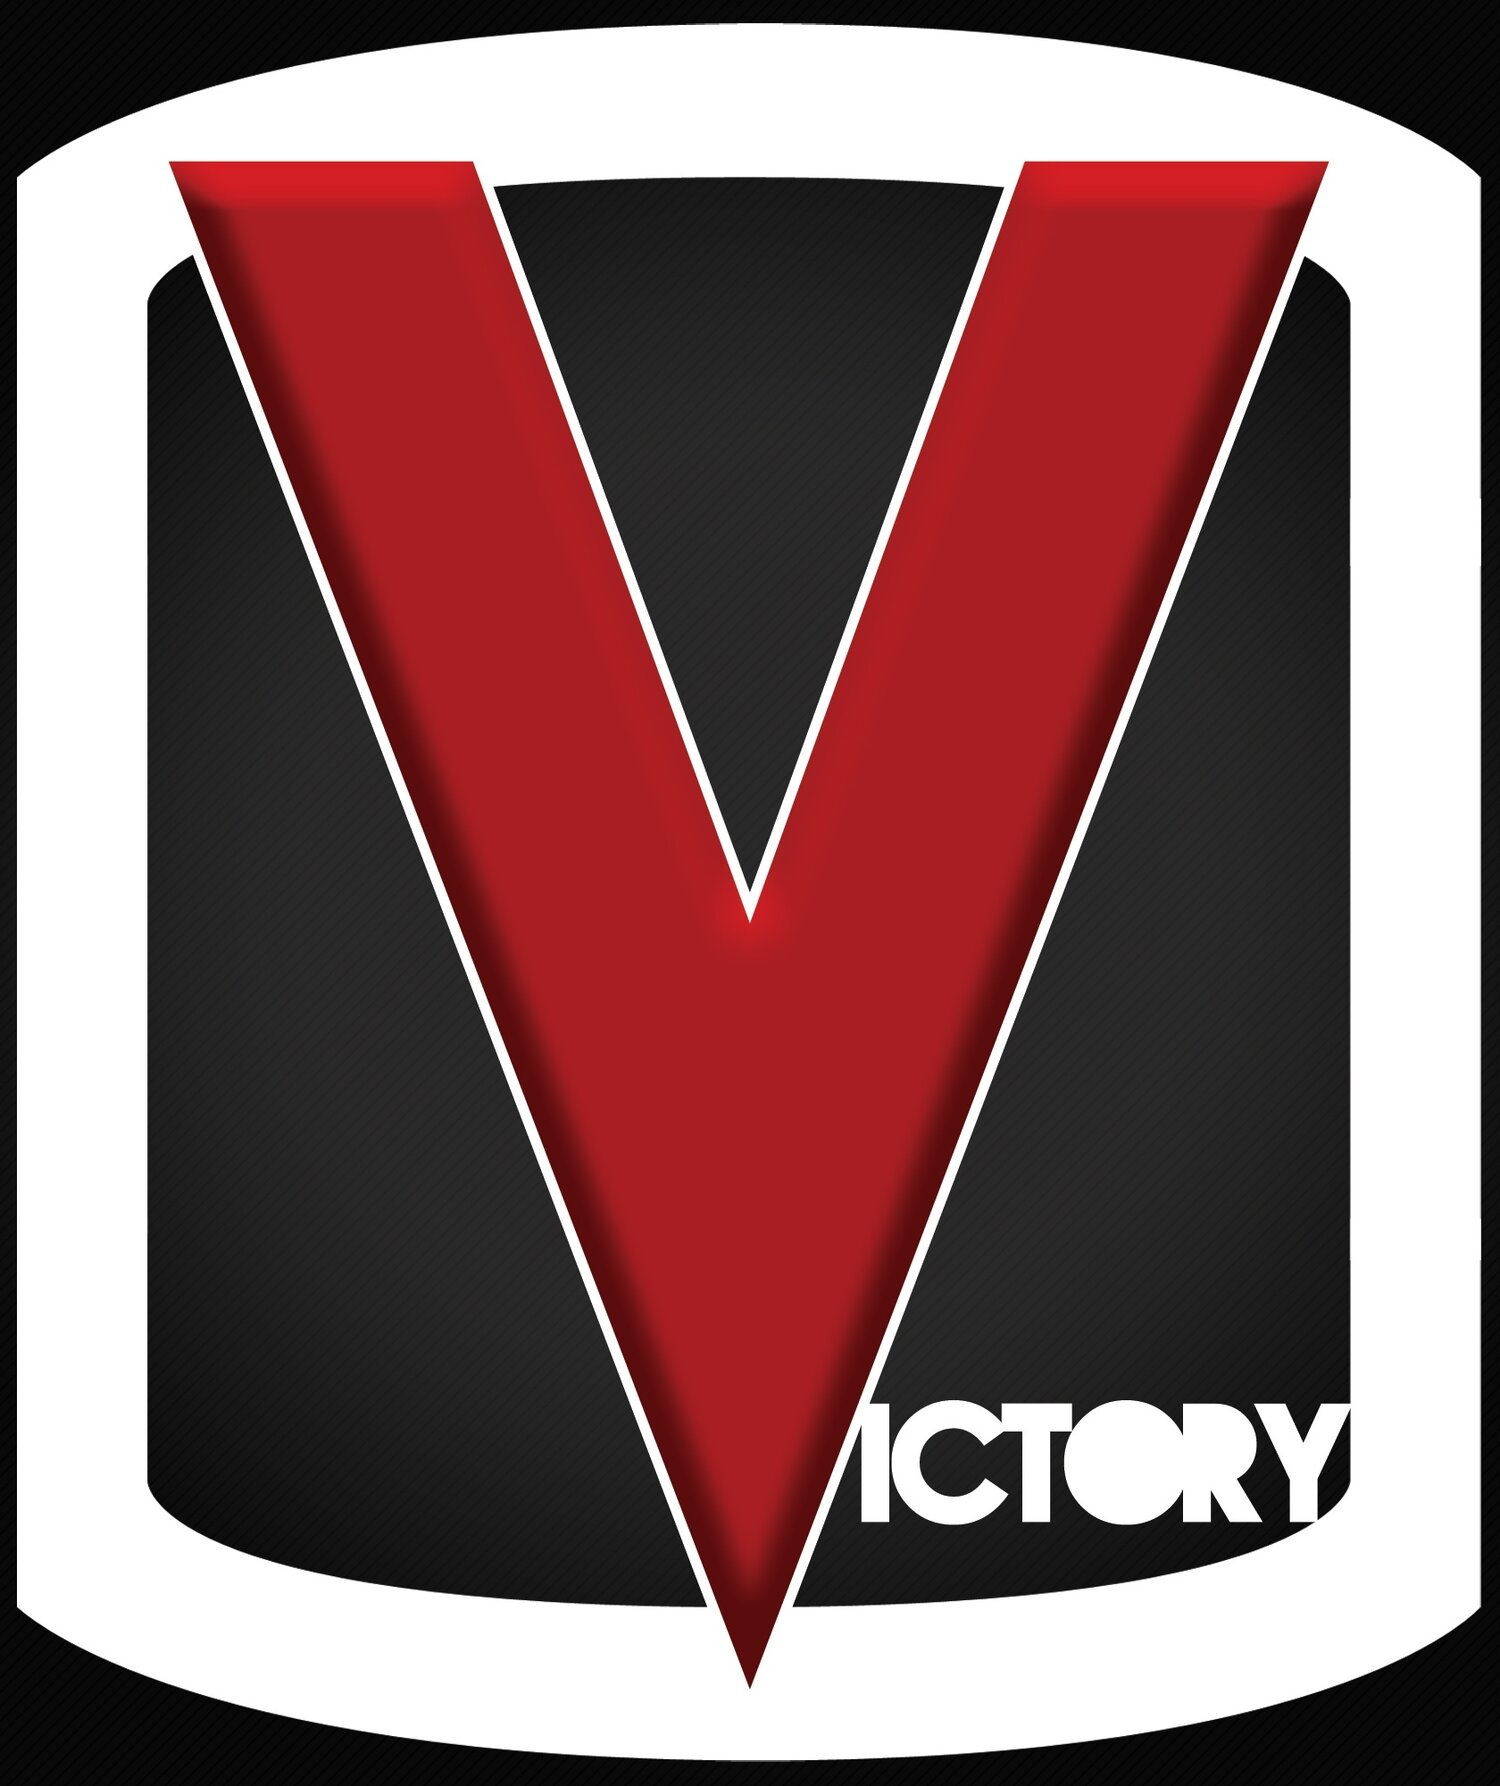 Victory 4 Youth